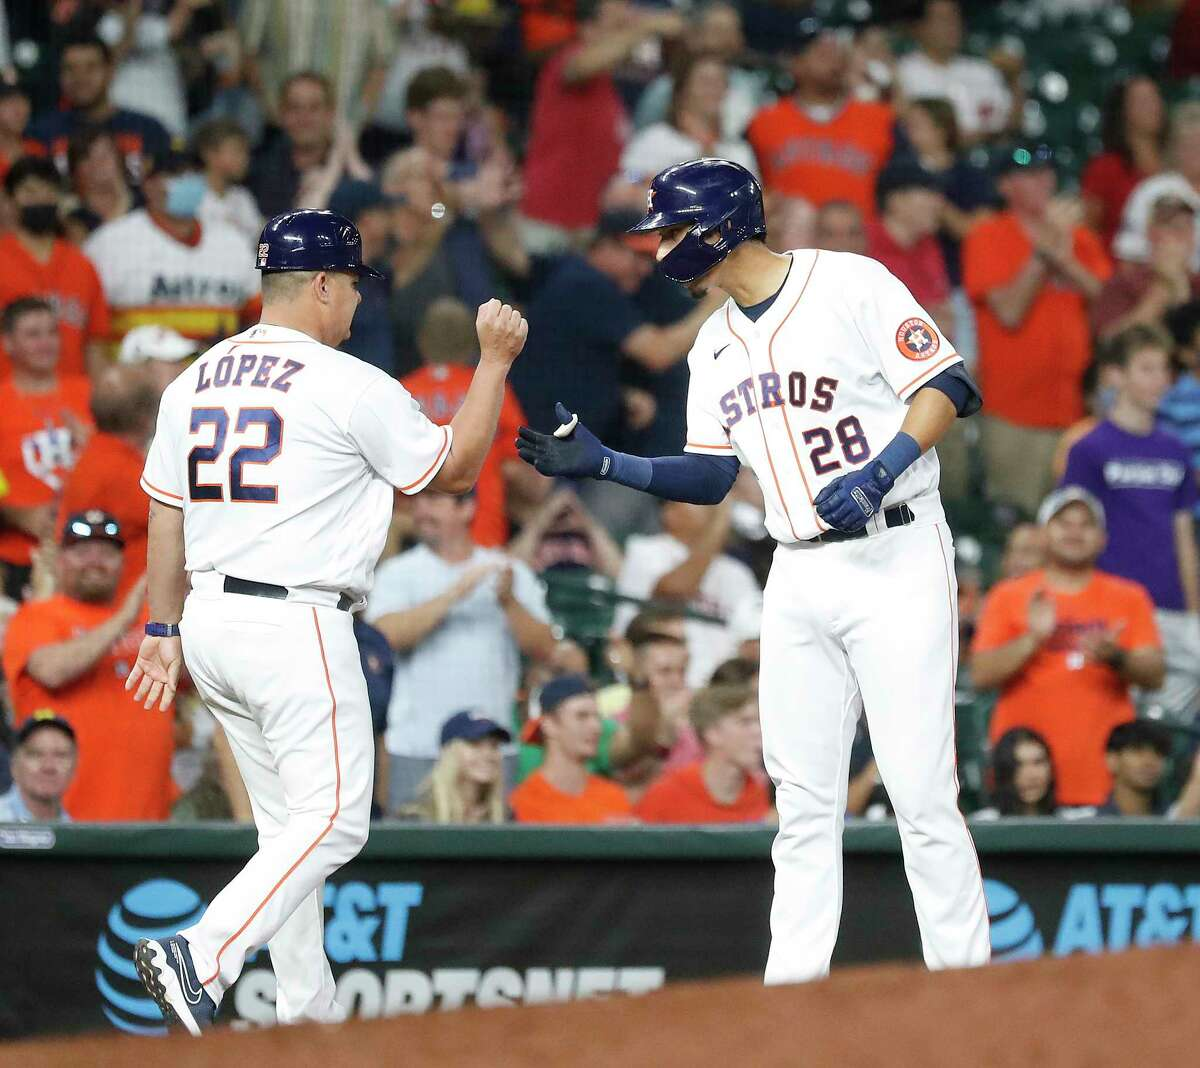 Houston Astros Taylor Jones (28) celebrates with third base coach Omar Lopez (22) an RBI double off Colorado Rockies starting pitcher Jon Gray, and due to a throwing error was able to reach third base during the fourth inning of an MLB baseball game at Minute Maid Park, Tuesday, August 10, 2021, in Houston.